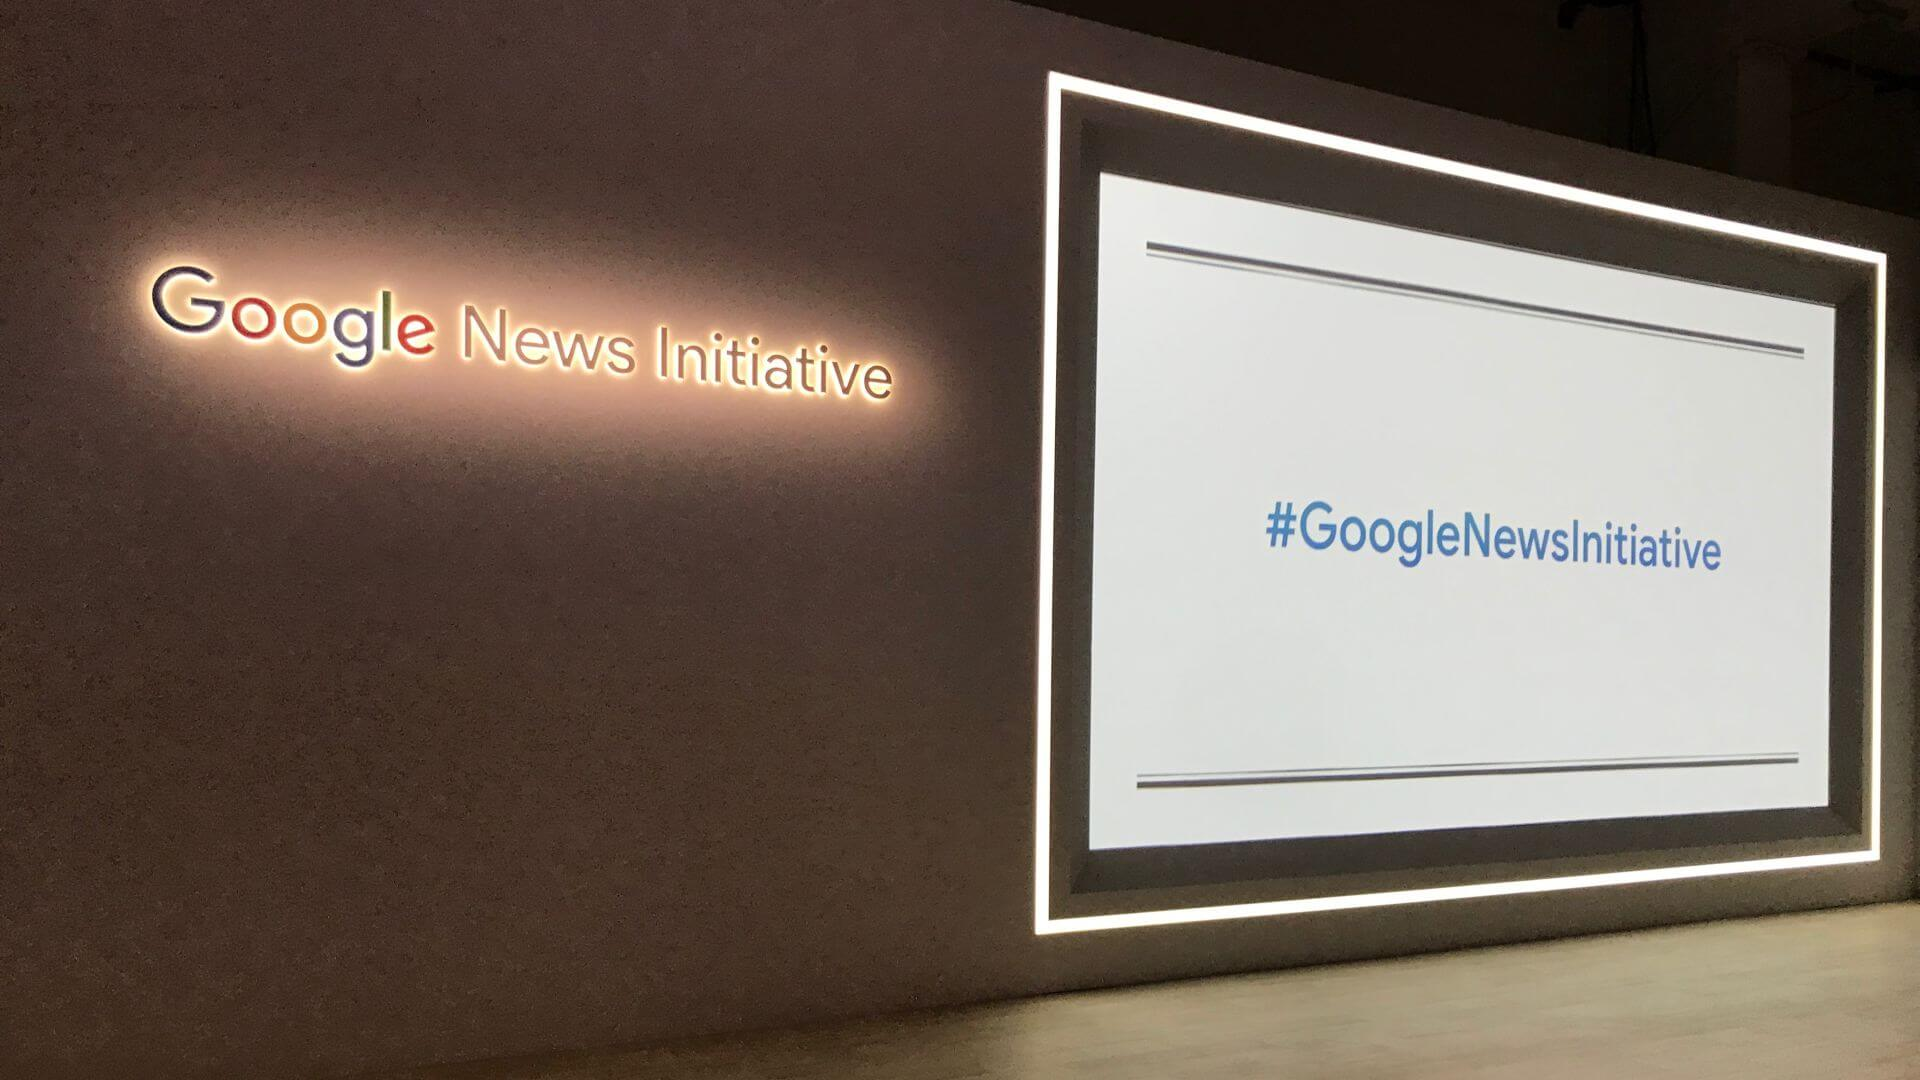 google-newsinitiative-stage-1920x1080